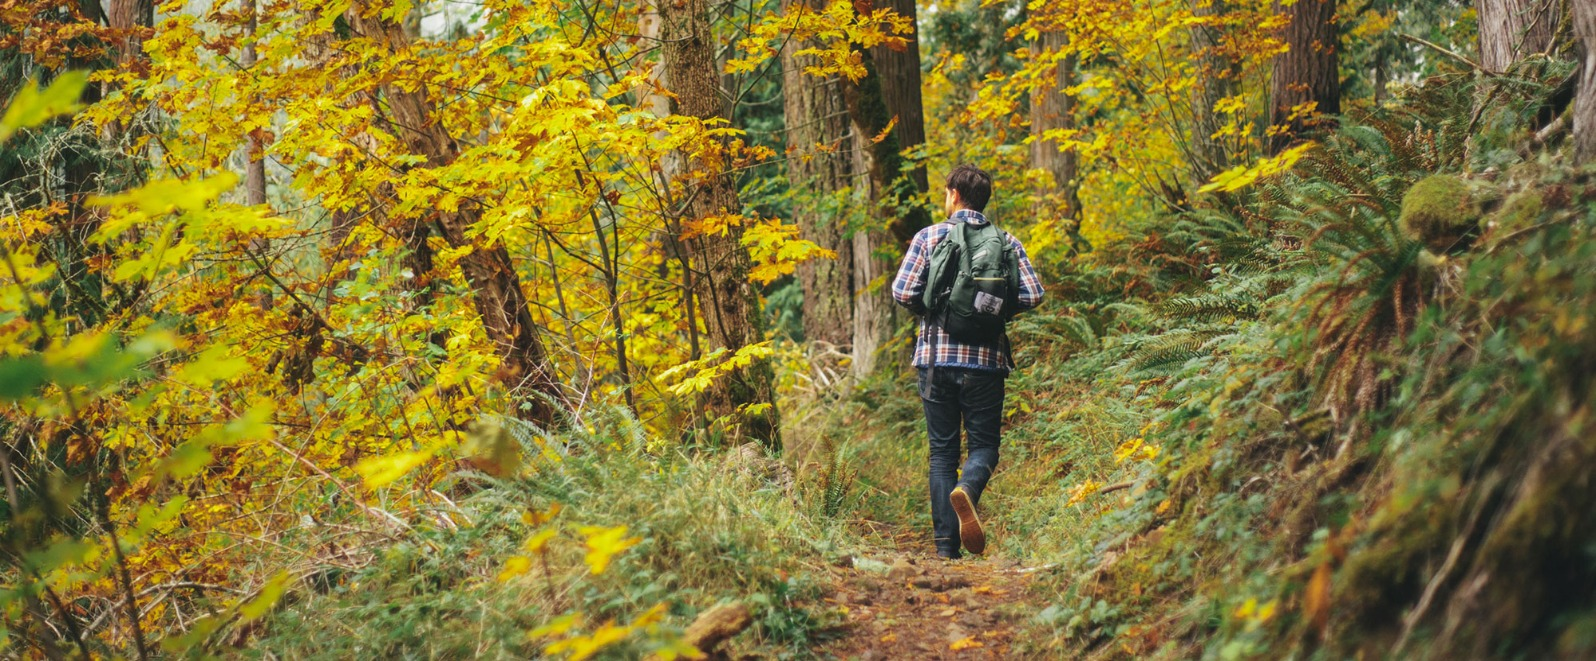 Male hiker with backpack walks along trail in old growth forest enjoying the fall foliage in Oregon's Mt. Hood Territory.